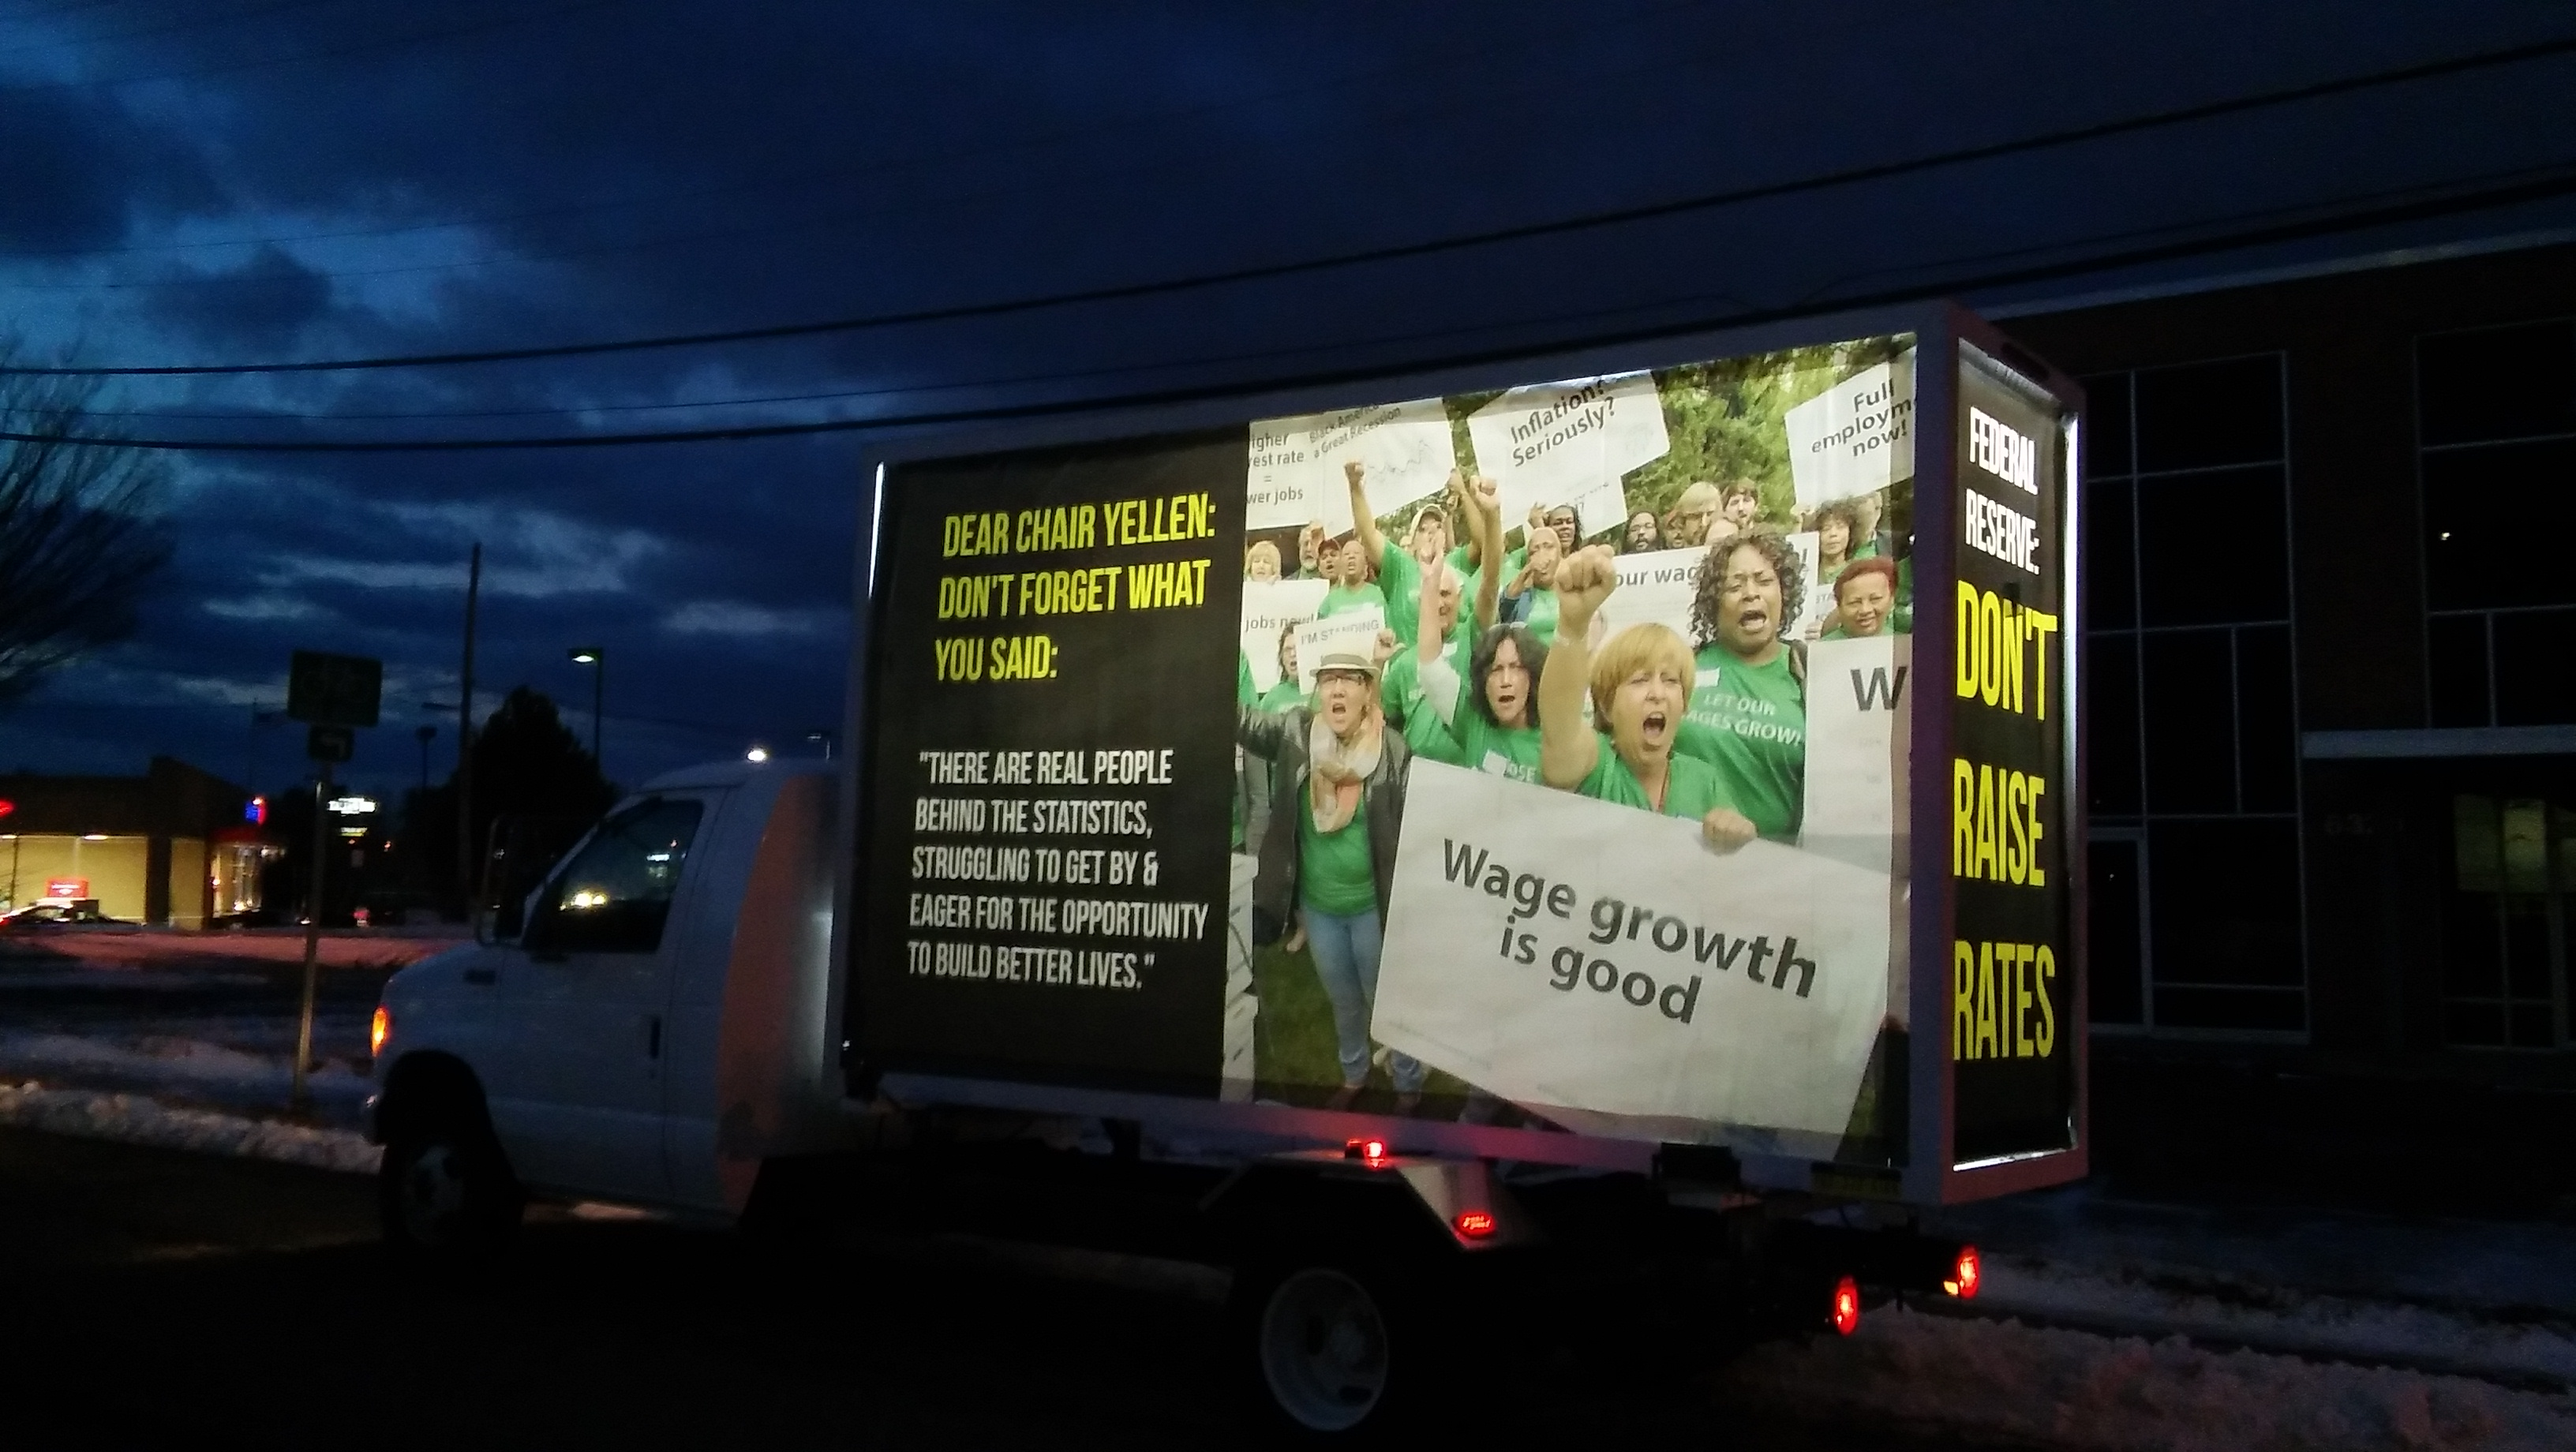 March 2017 jumbo 3 sided mobile billboard truck with message for the federal reserve in washington d c regarding interest rate hikes